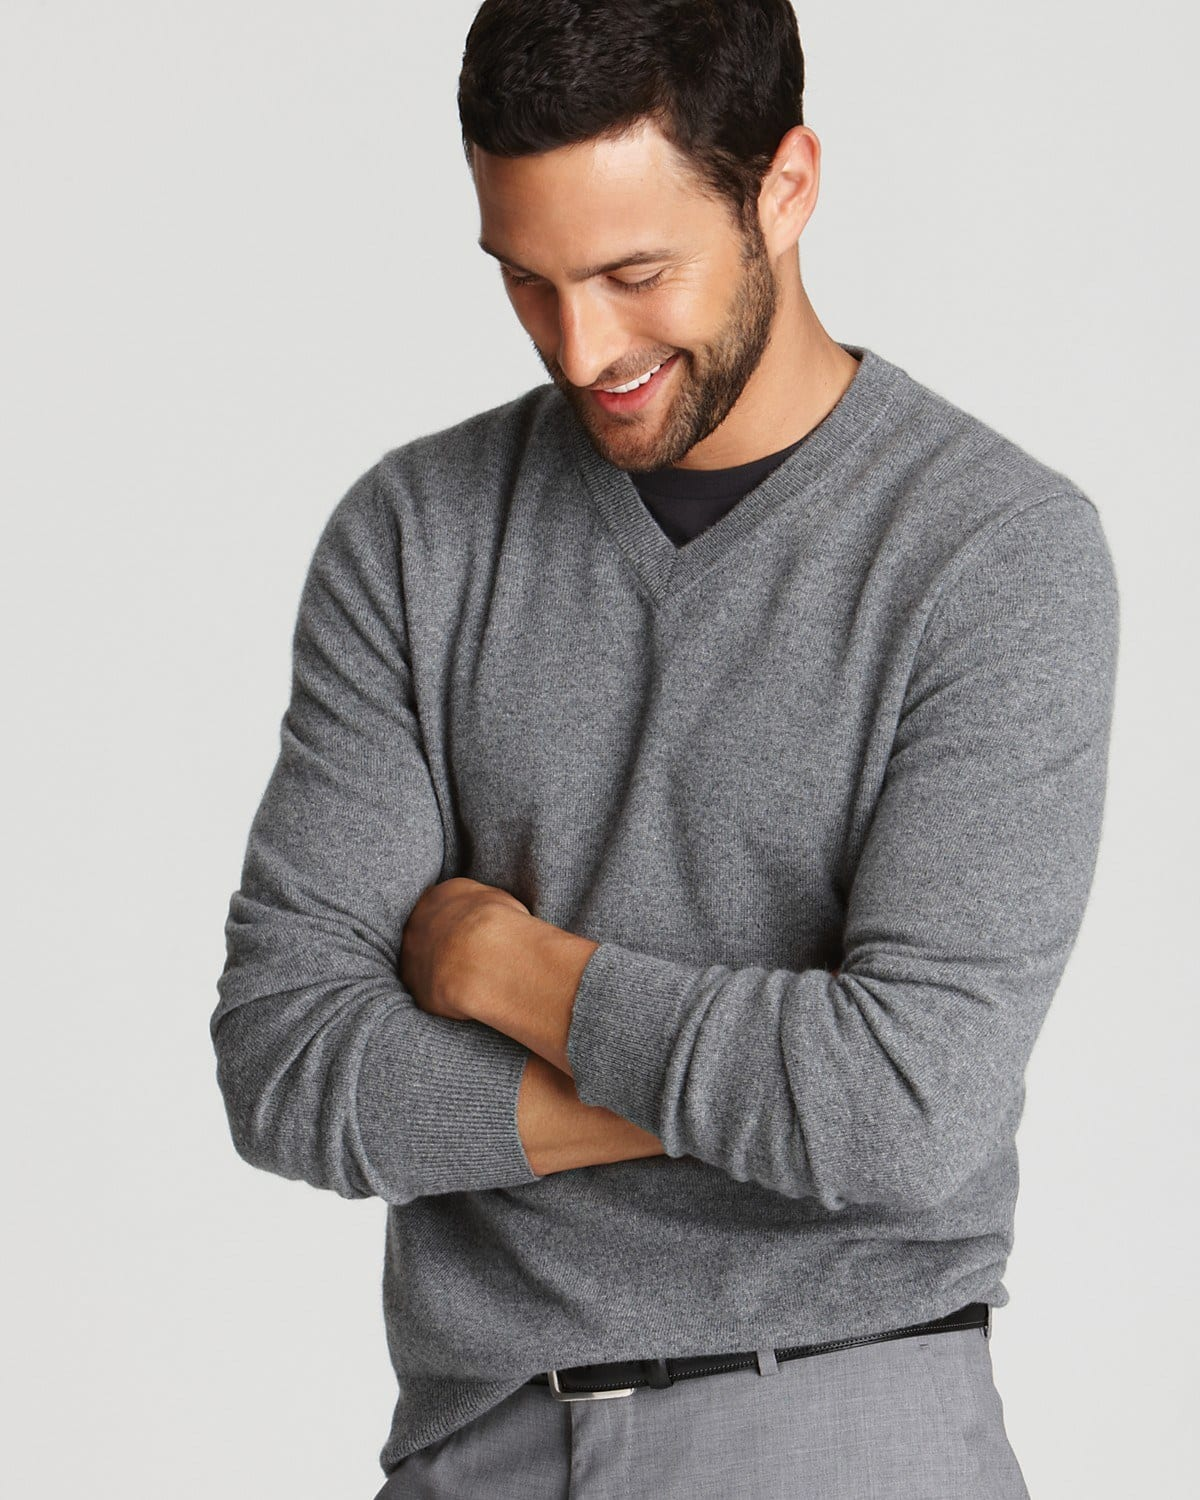 1dfed166ae7 Sweater outfits for men – 17 Ways to Wear Sweaters Fashionably